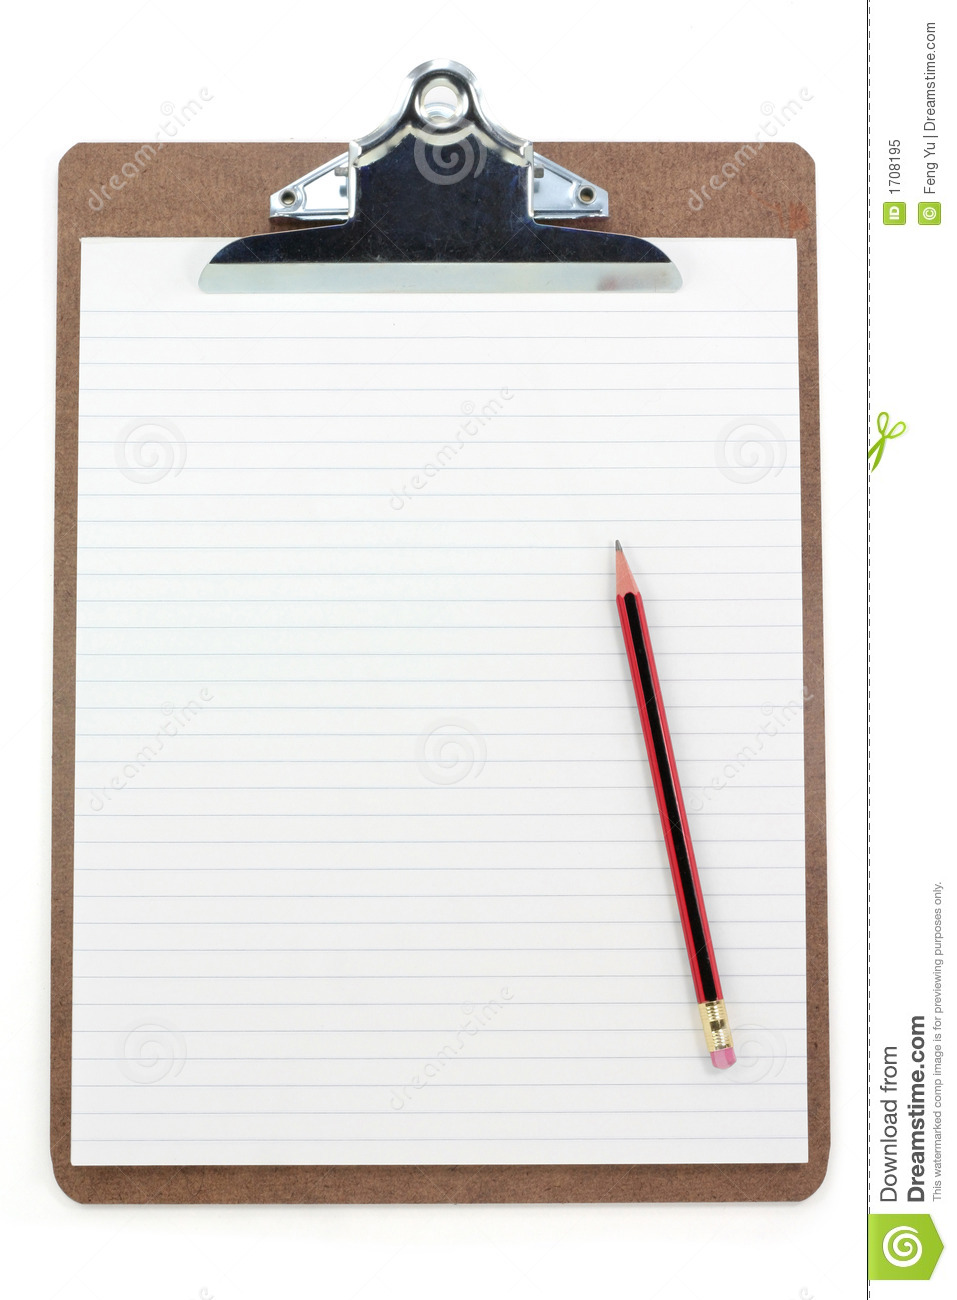 Clipboard And Lined Paper Royalty Free Stock Photo